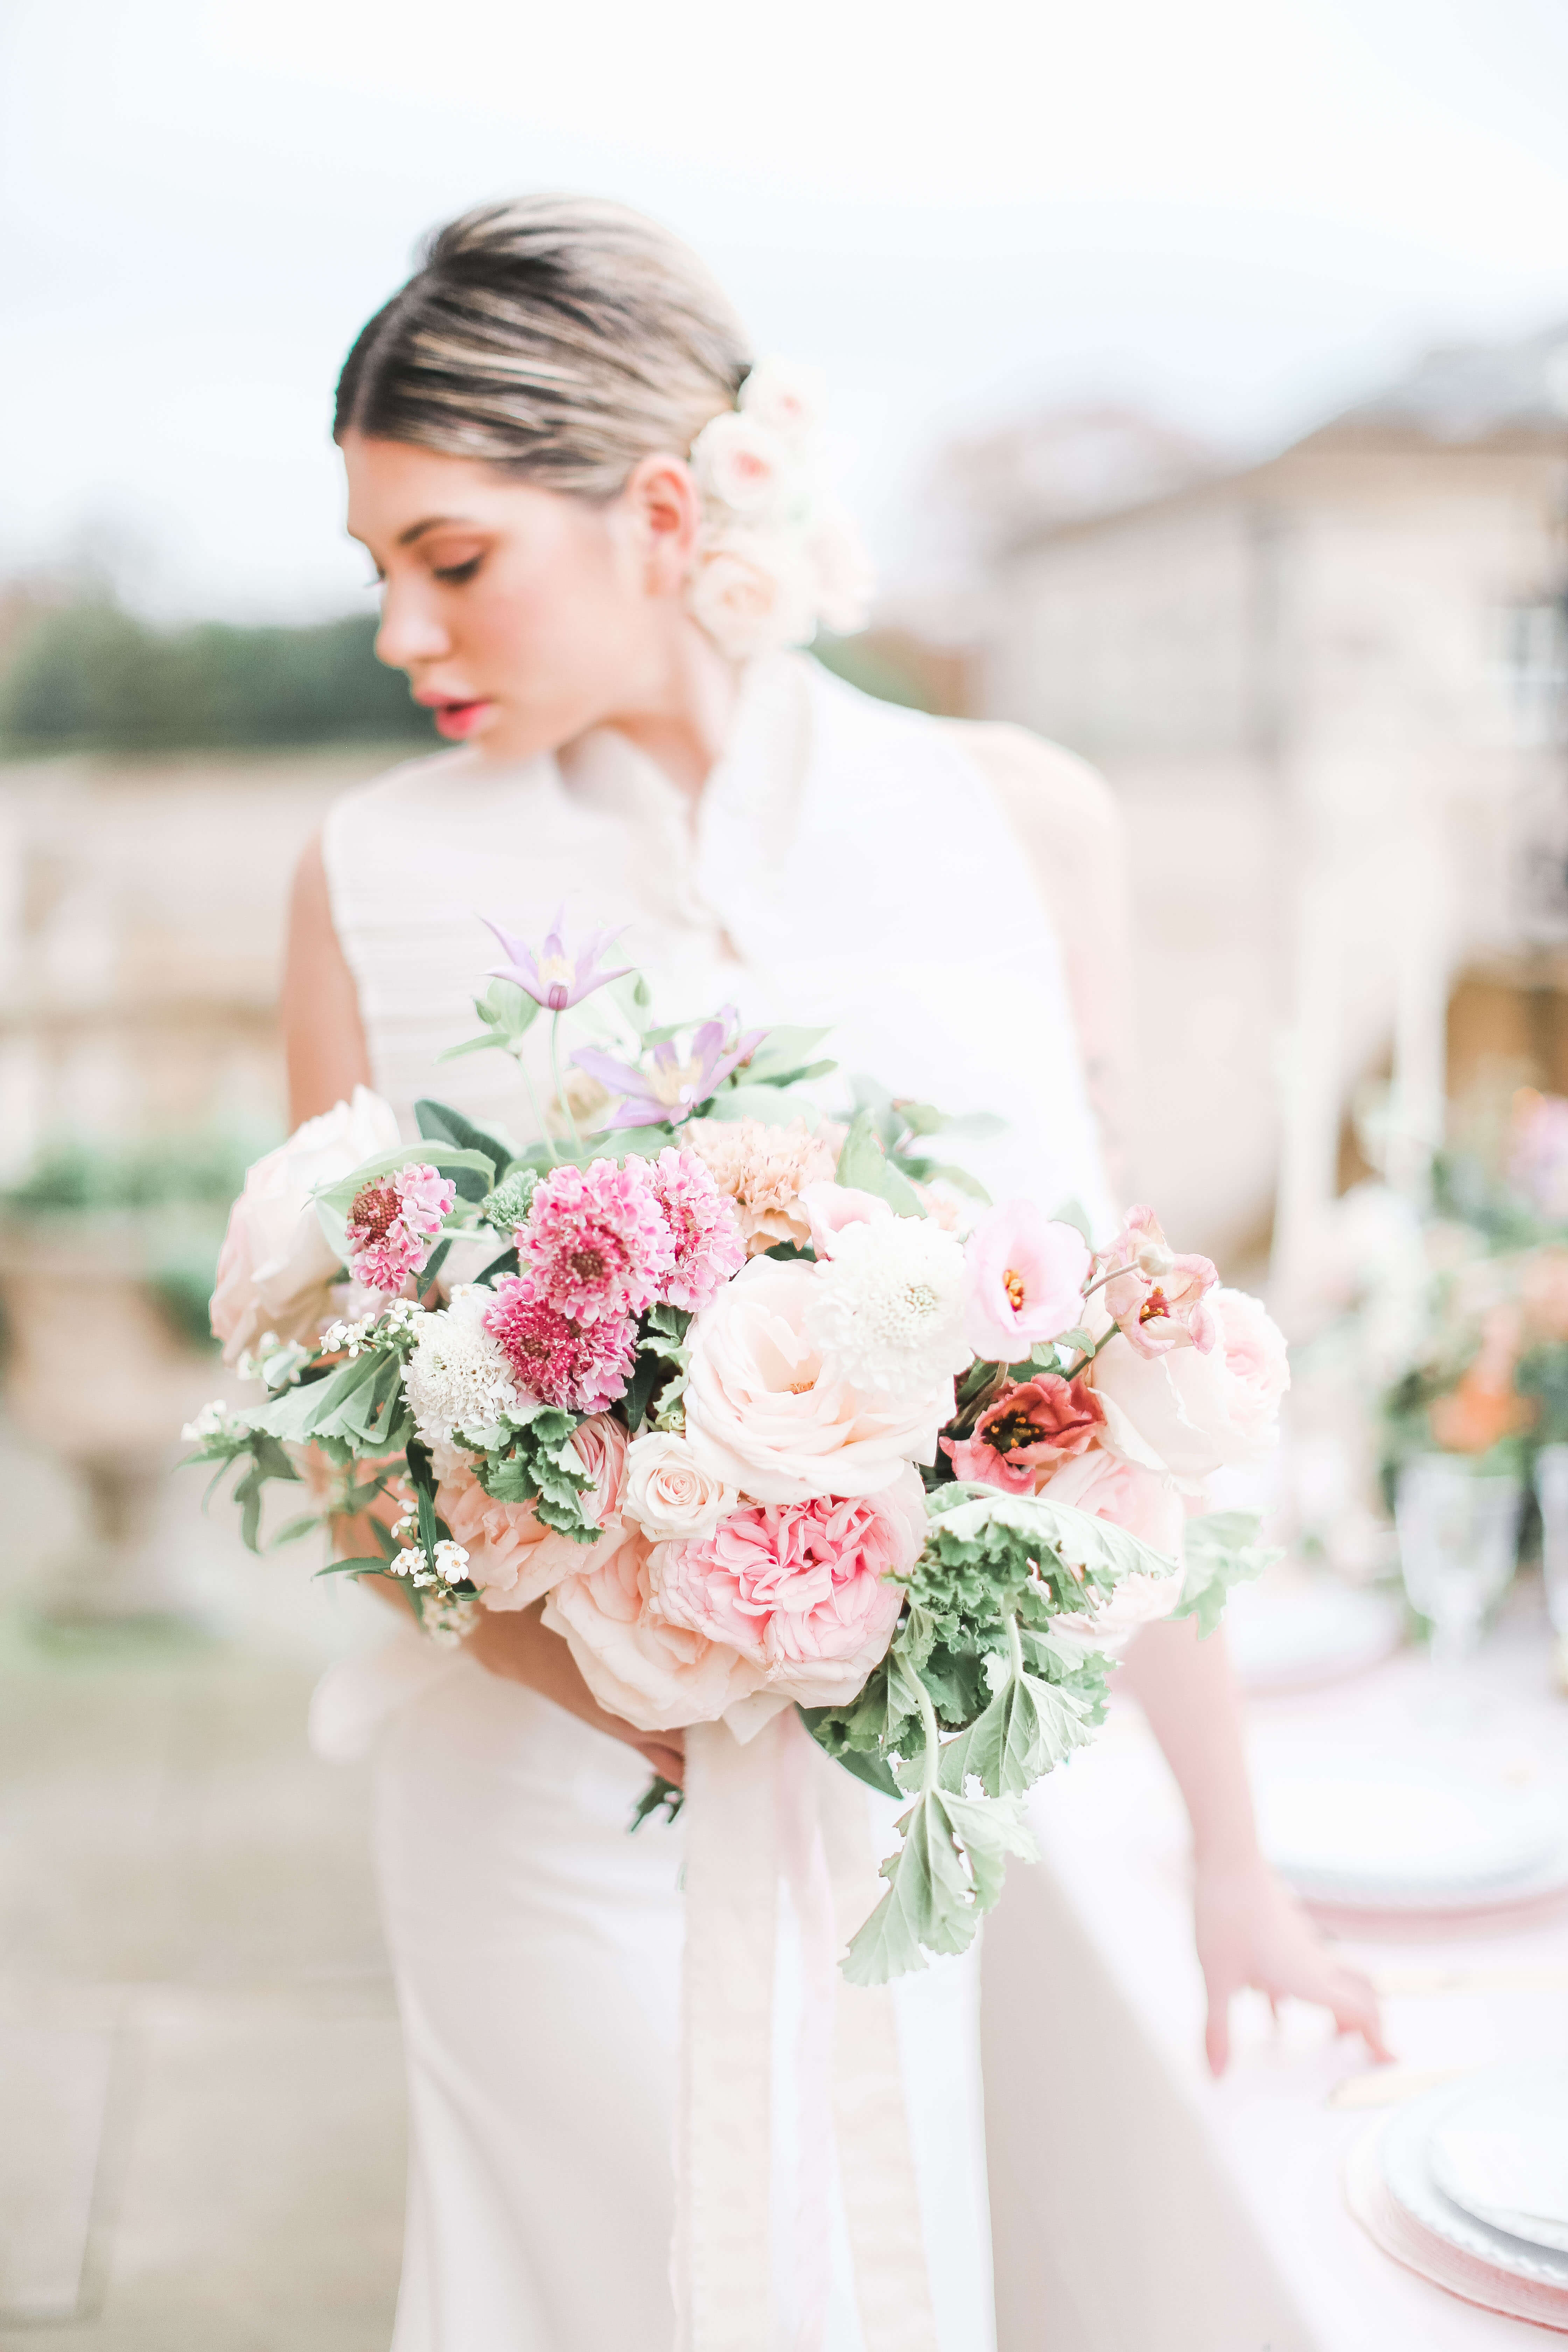 Bride with a pink wedding bouquet with Japanese roses, scabiosas, earthy eustomas, clematis and geraniums